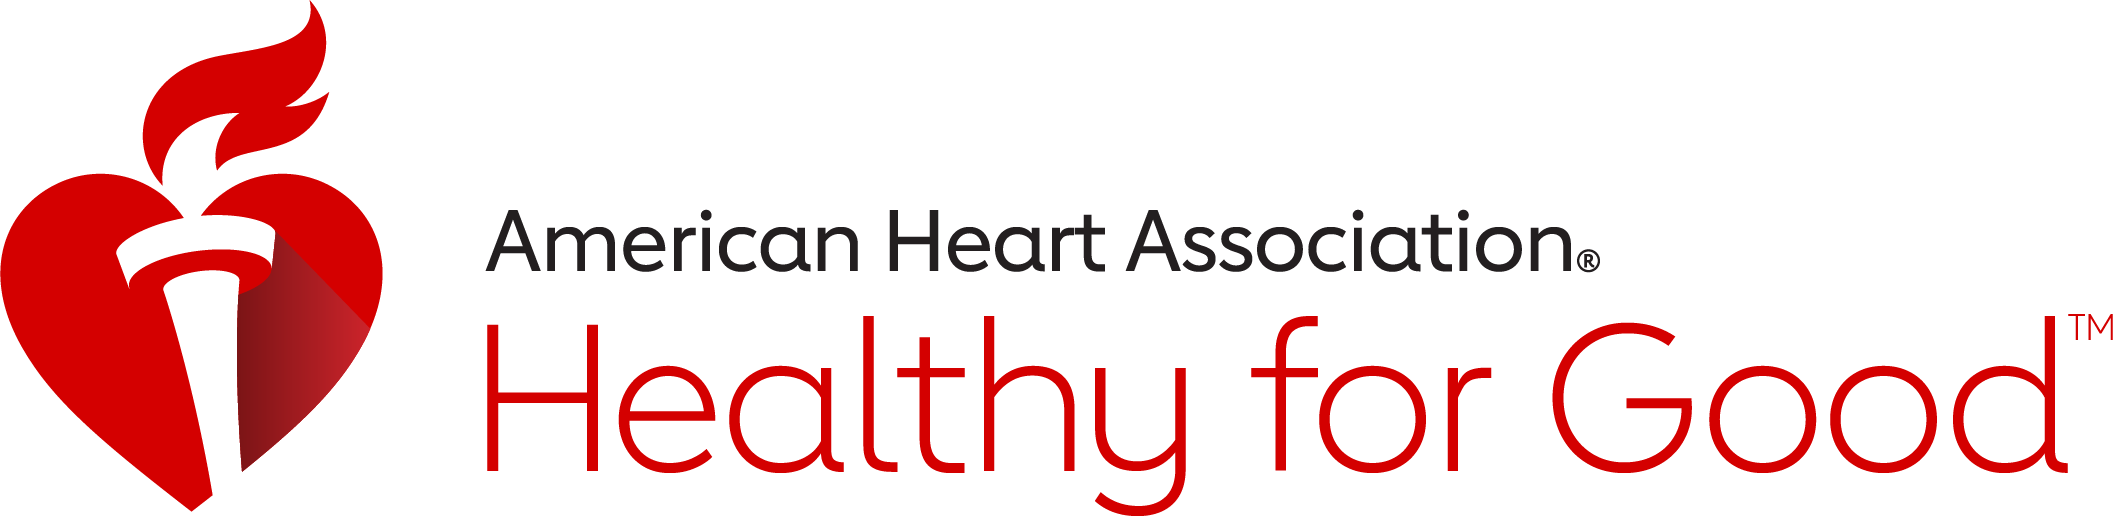 American Heart Association Healthy for Good logo.